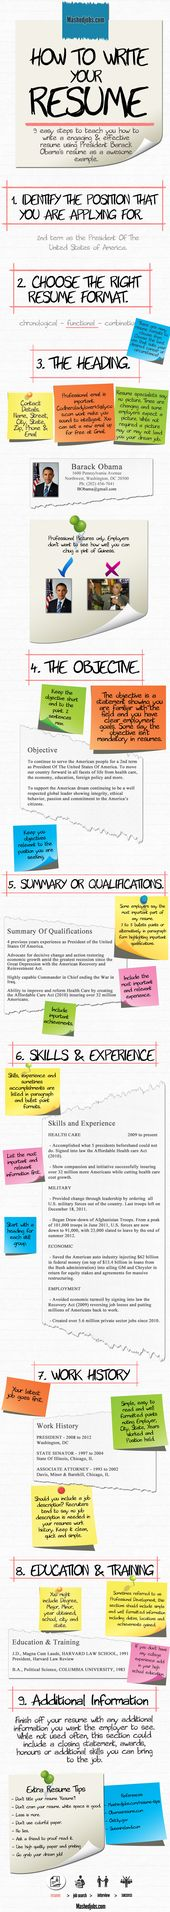 10 best Hustle images on Pinterest Internet marketing, Resume - ideal resume length